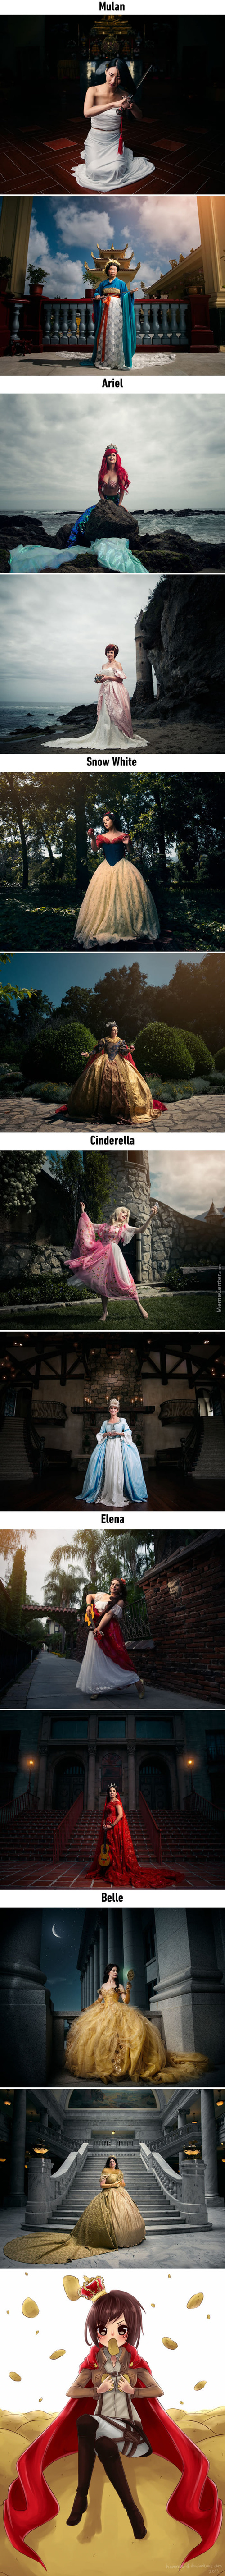 Photo Shoots Reimagine Disney Princesses As Future Queens